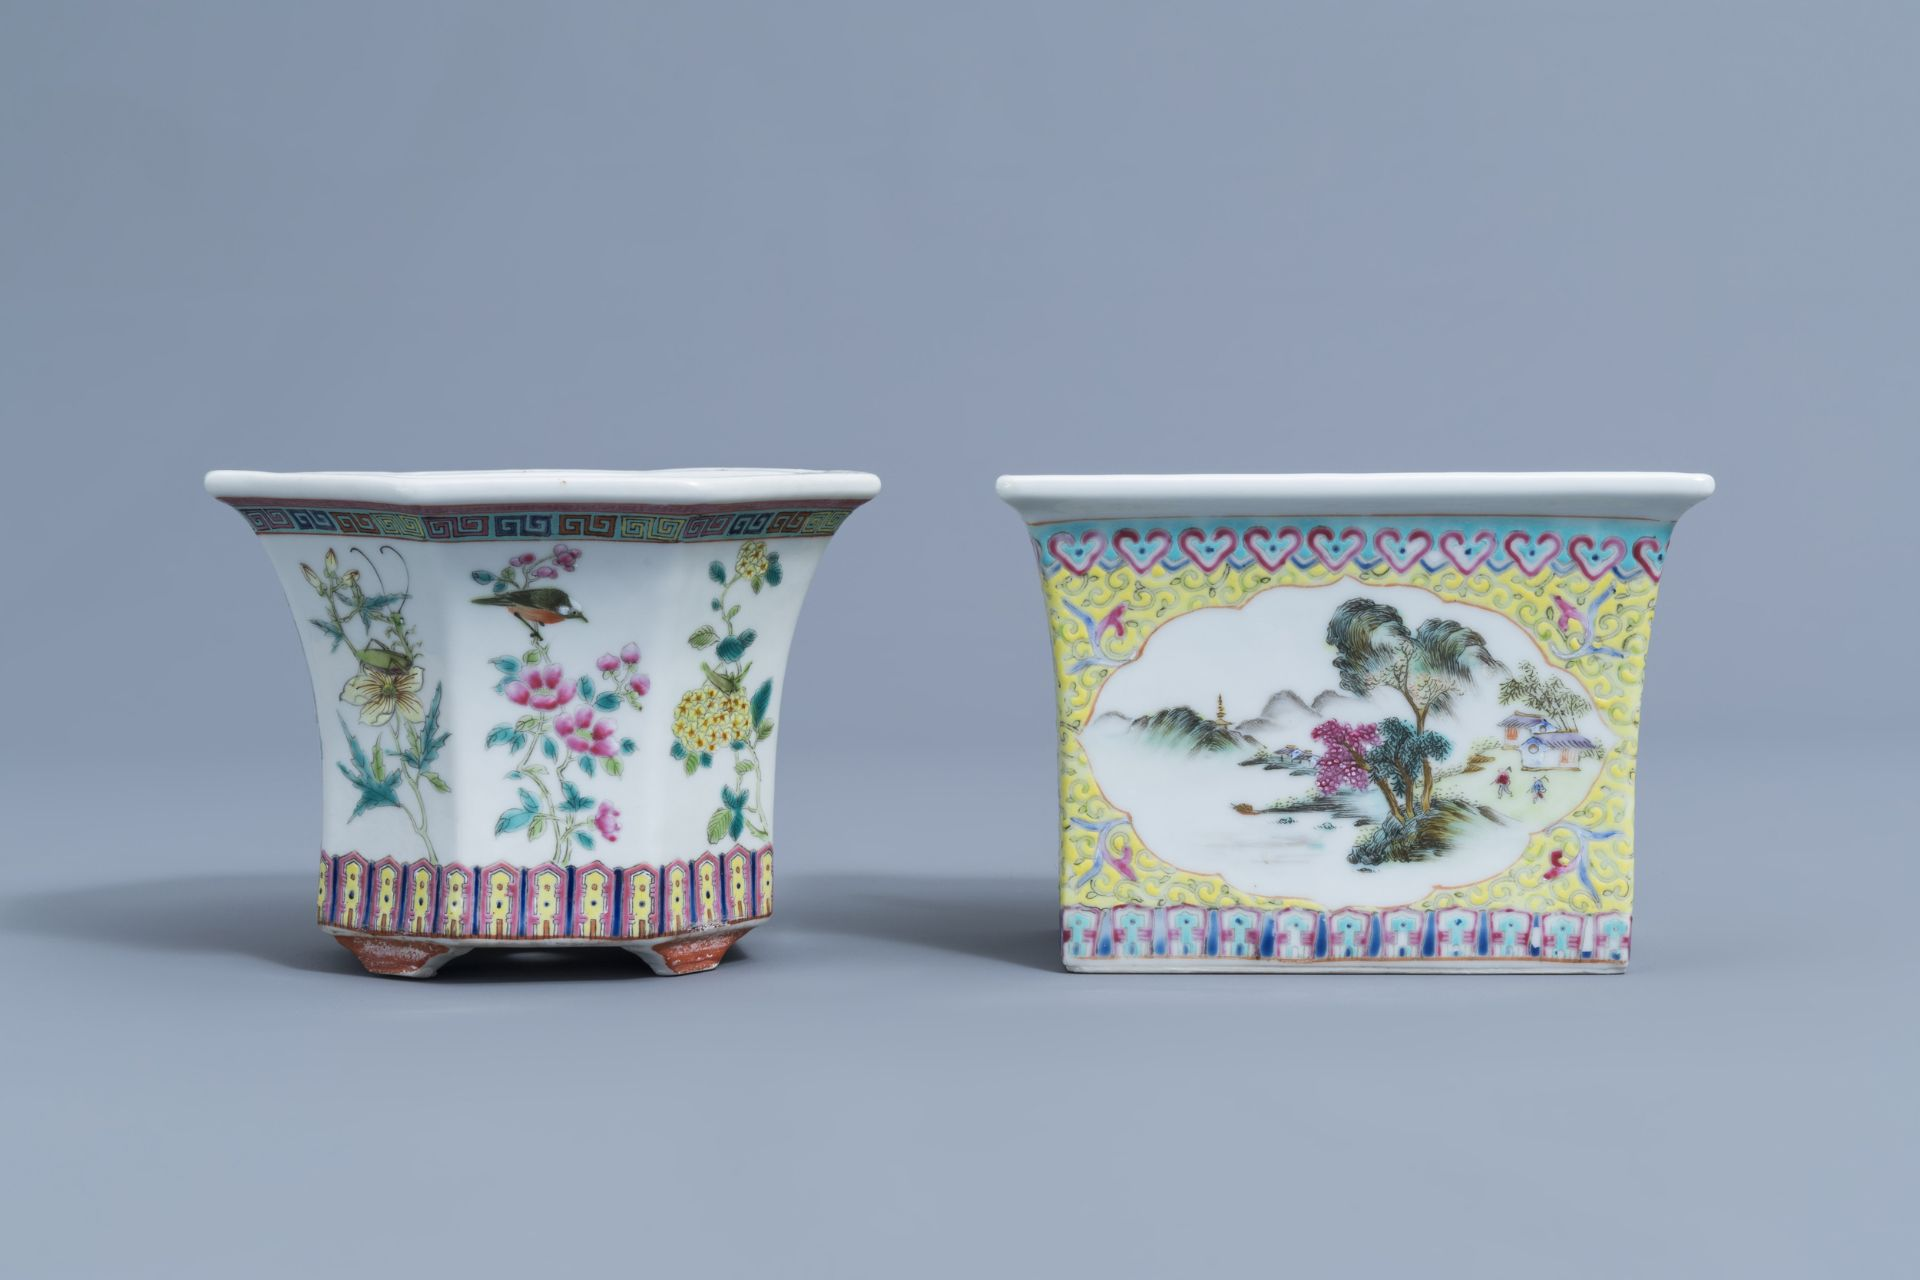 Two Chinese famille rose jardinires and a bowl with floral design, 20th C. - Image 4 of 15